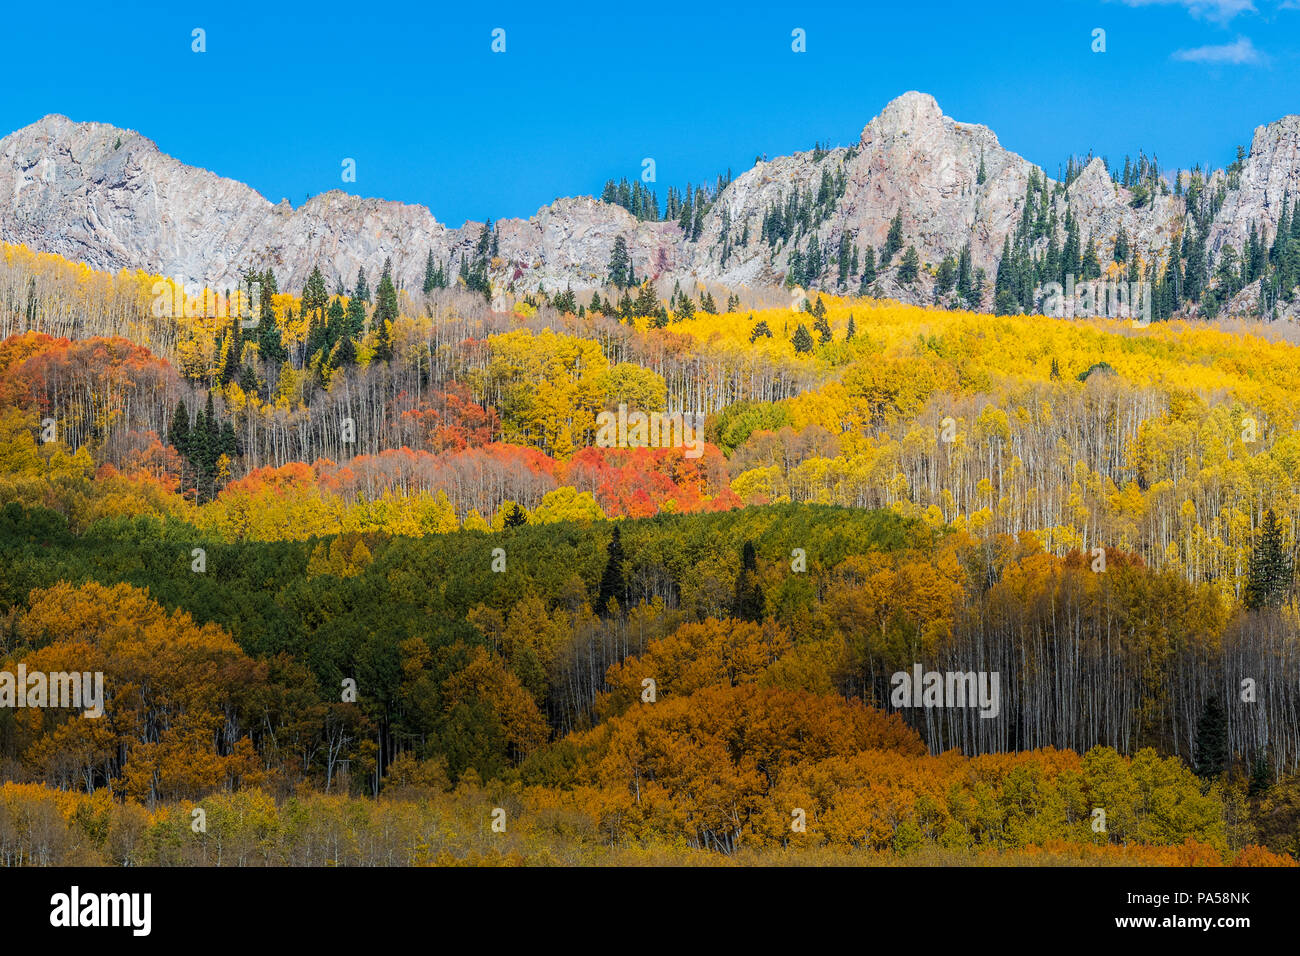 Aspen trees and autumn color along Kebler Pass in West Elk Mountains near Crested Butte, Colorado. - Stock Image